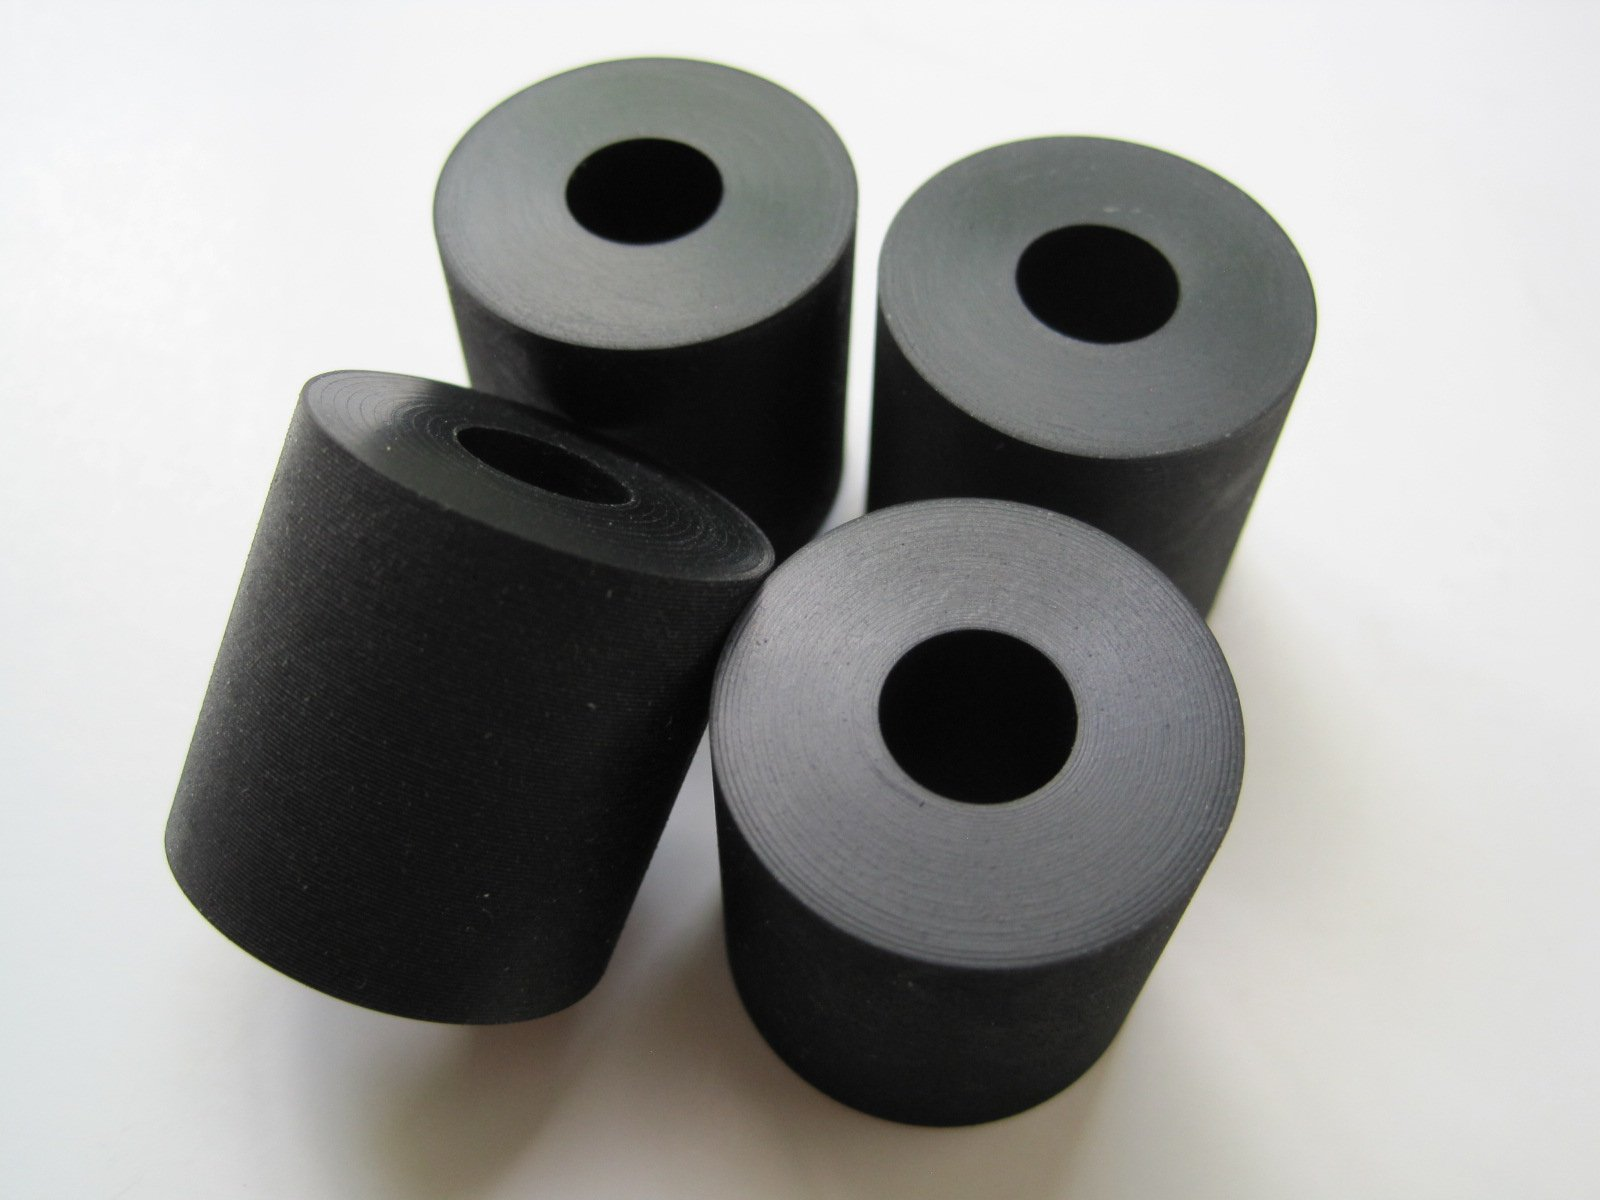 4-Pack - Multi-Purpose Rubber Spacer 1'' OD x 3/8'' ID x 1'' Thick (AVS-X19-13)